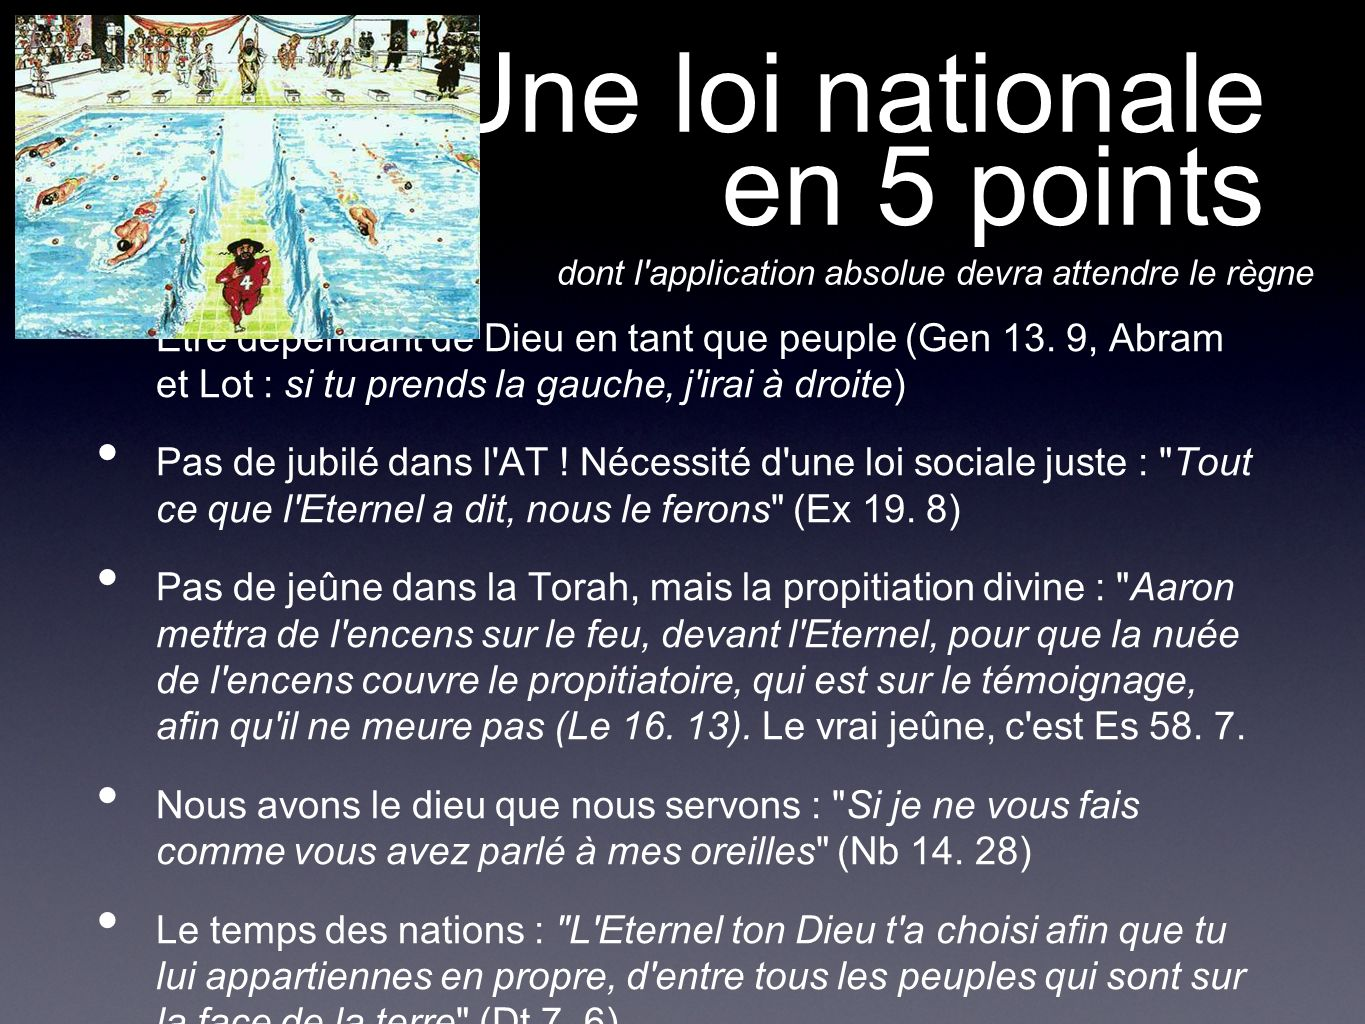 Une loi nationale en 5 points